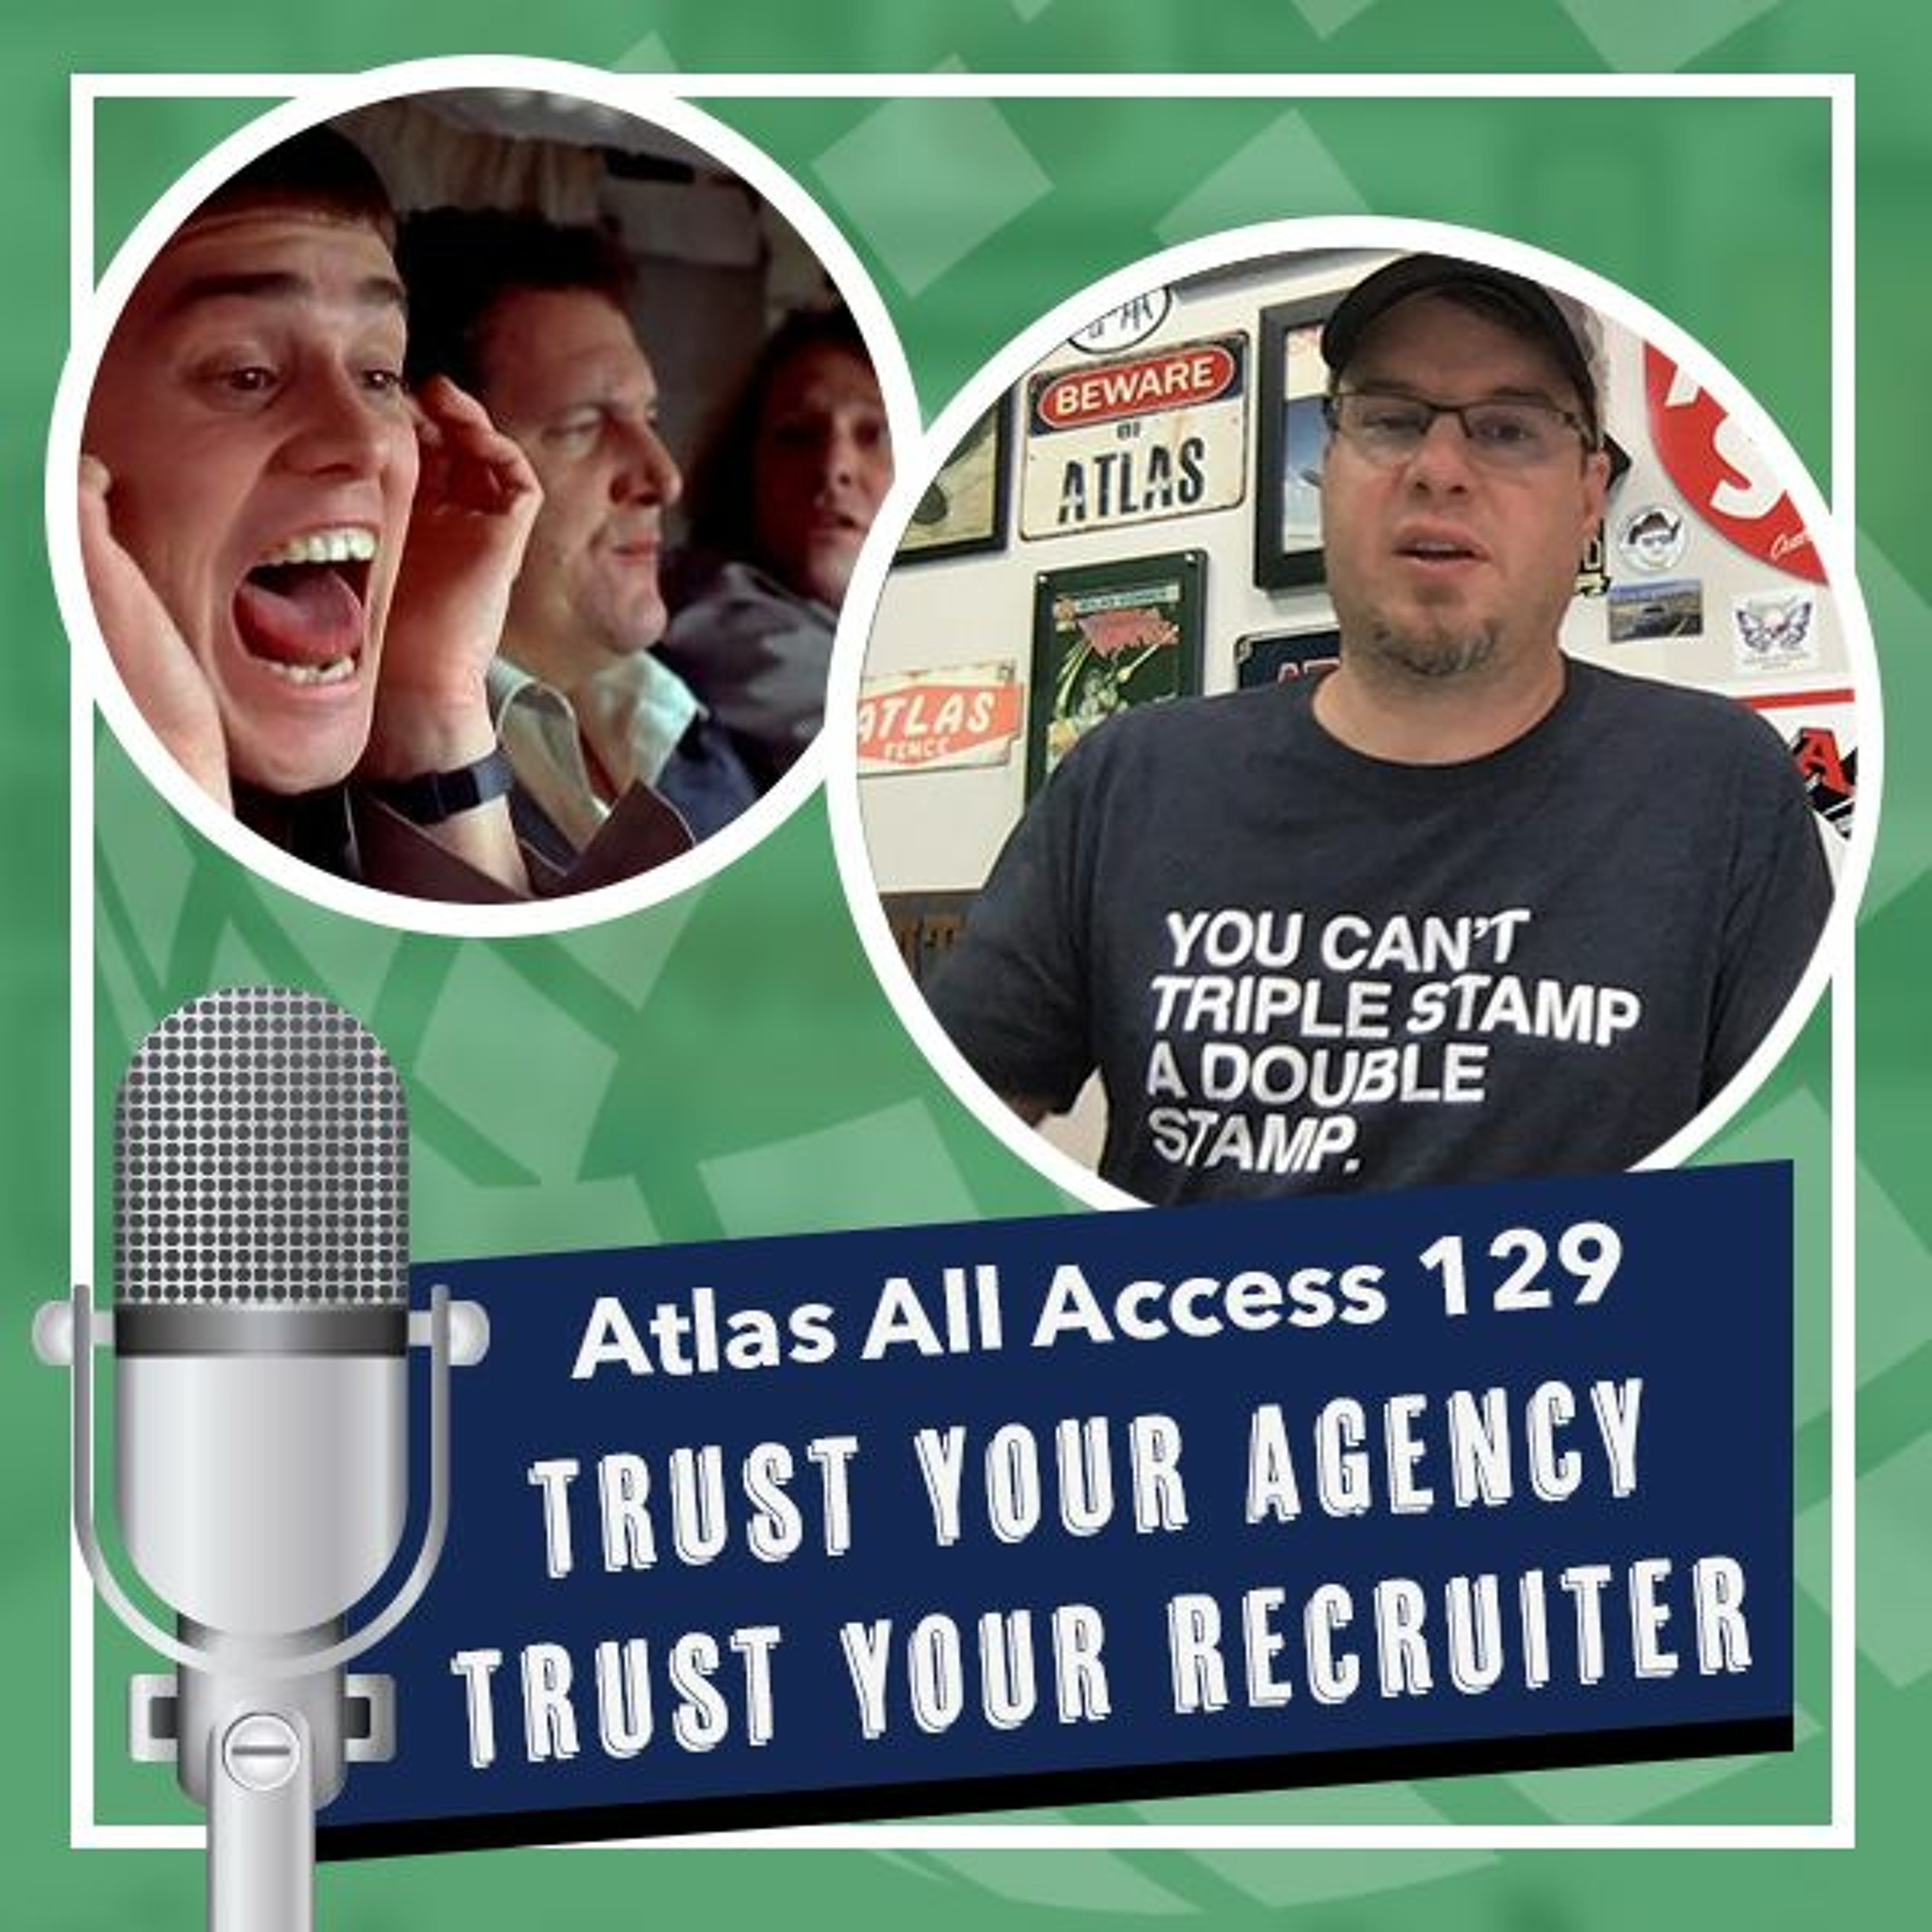 Trust your agency, trust your recruiter - Atlas All Access 129